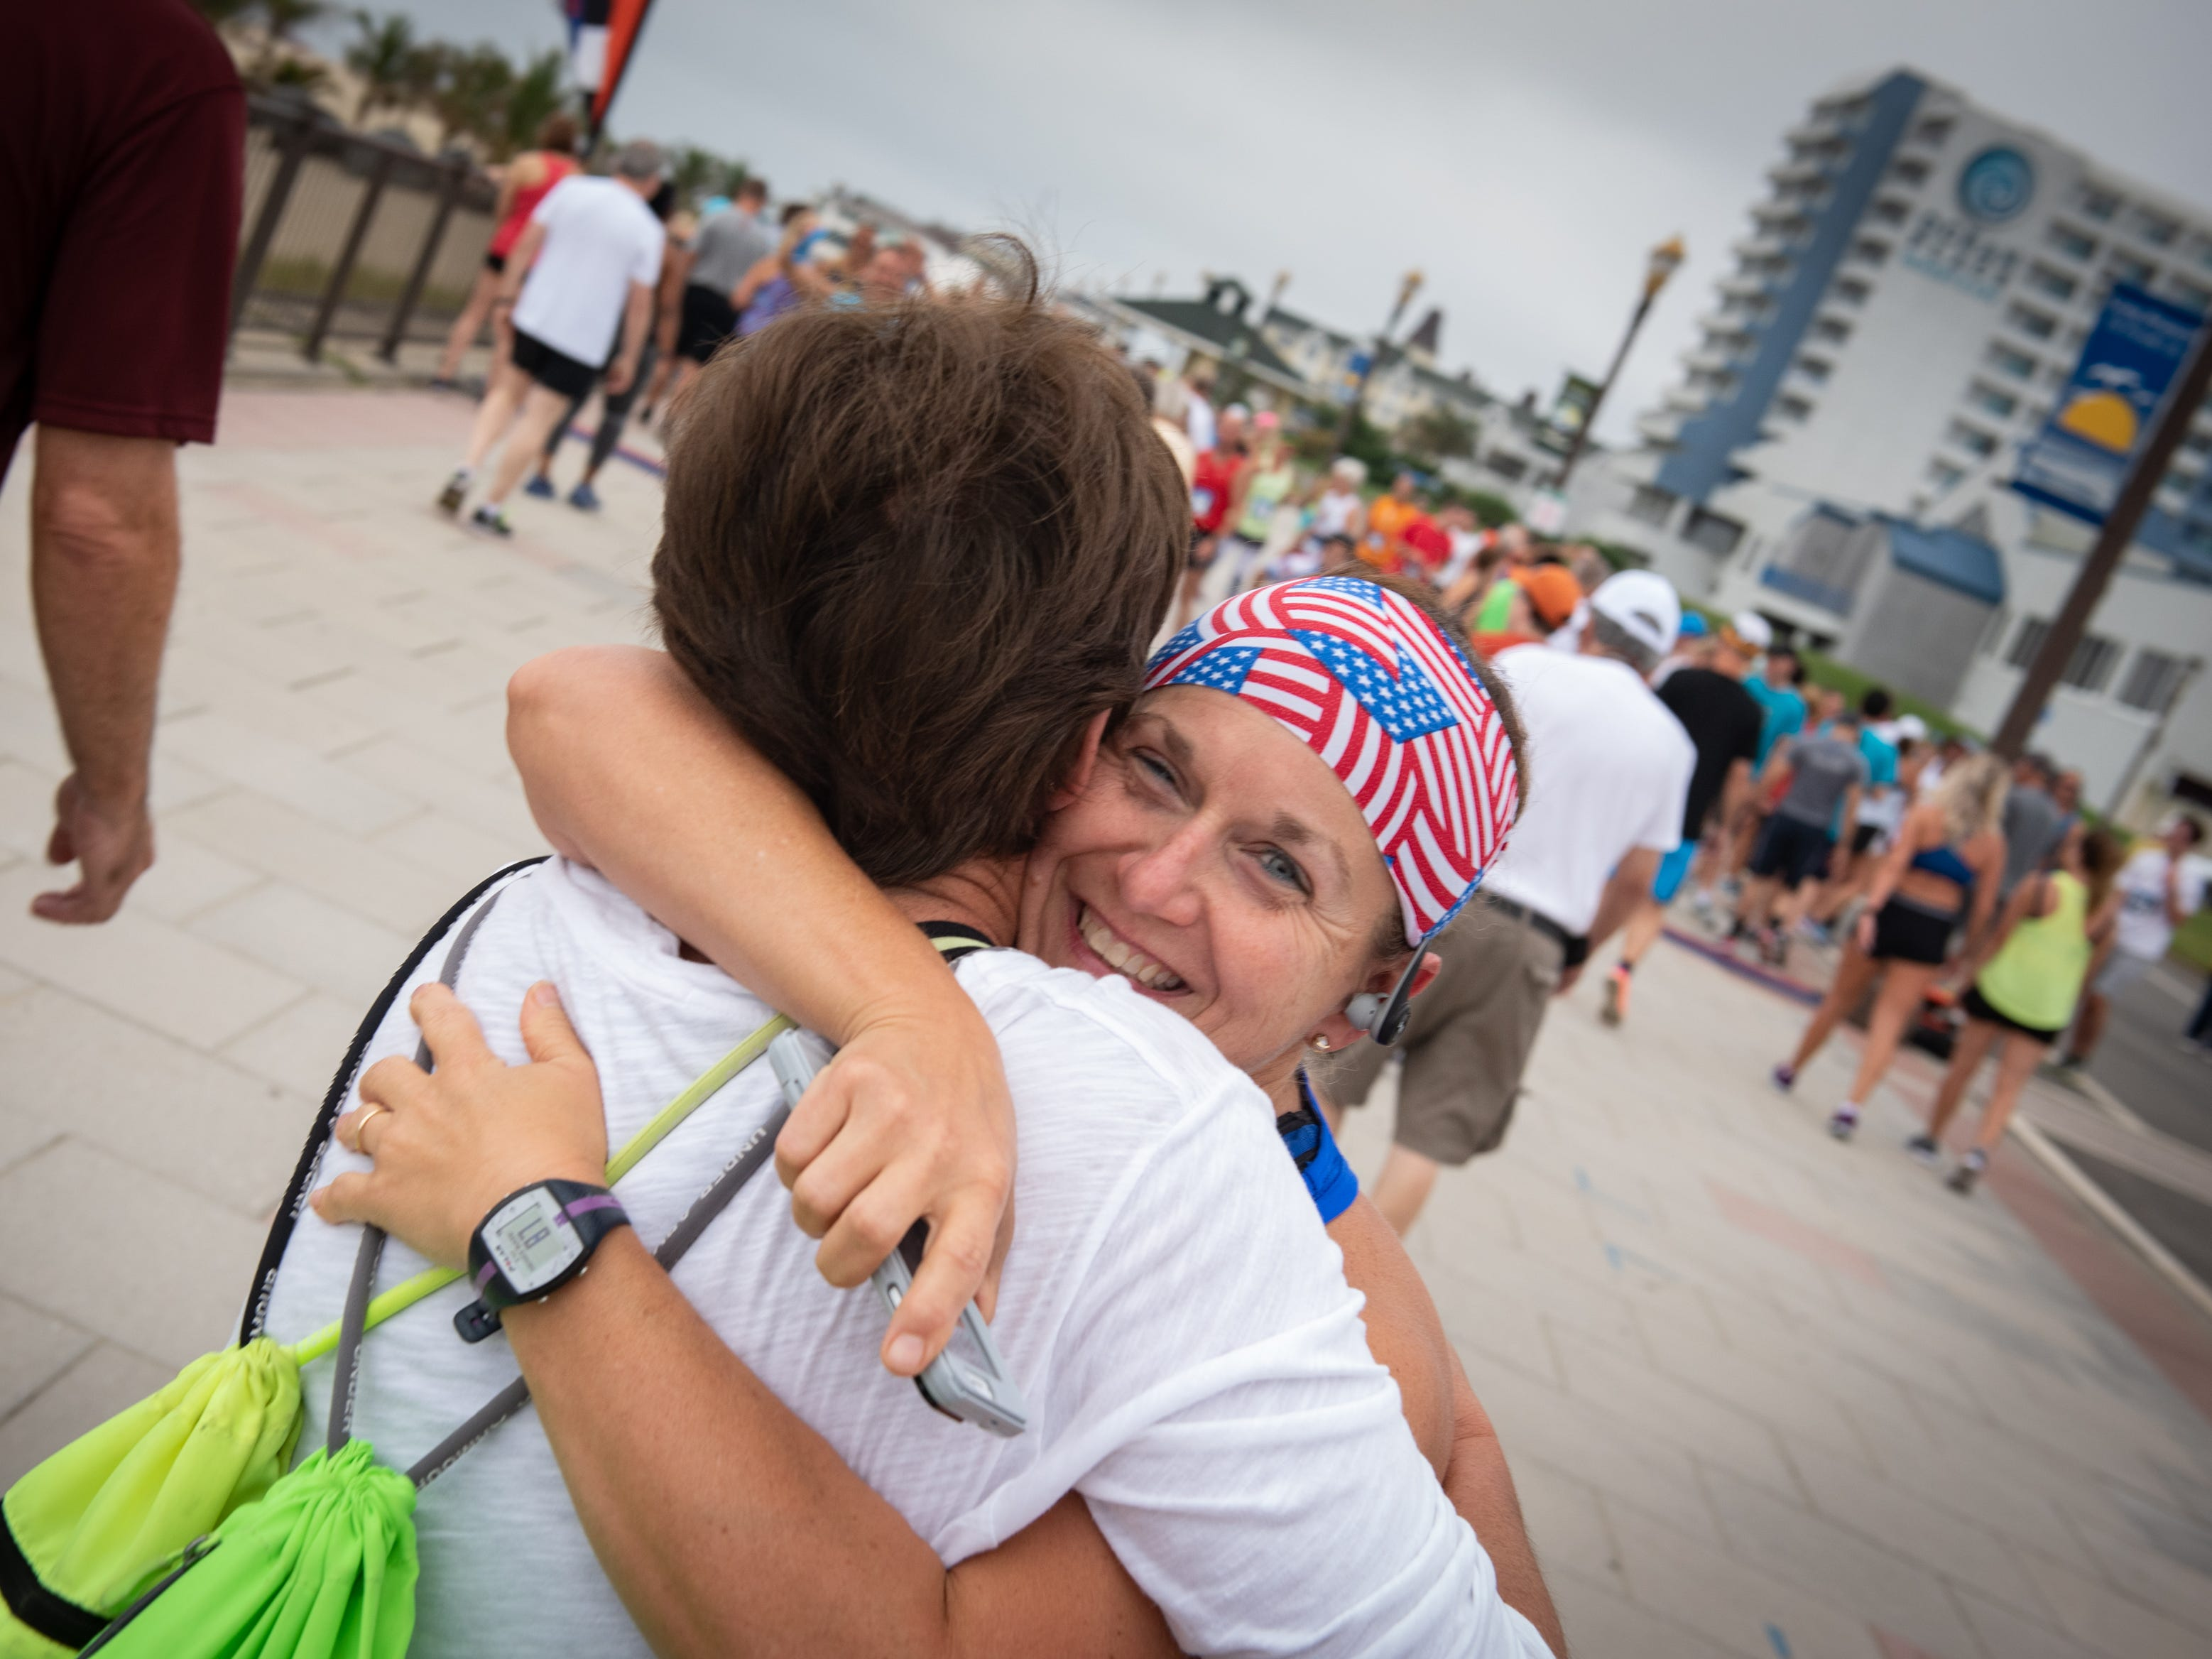 The Pier House 5K run was held along the ocean in the north end of Long Branch on Monday, September 3, 2018.  Beth Hall, (left) Beachwood, could not enter the race because of an injury but she gets a hug from her usual race partner Suzanne Burns (facing camera) of Toms River. / Russ DeSantis for the Asbury Park Press